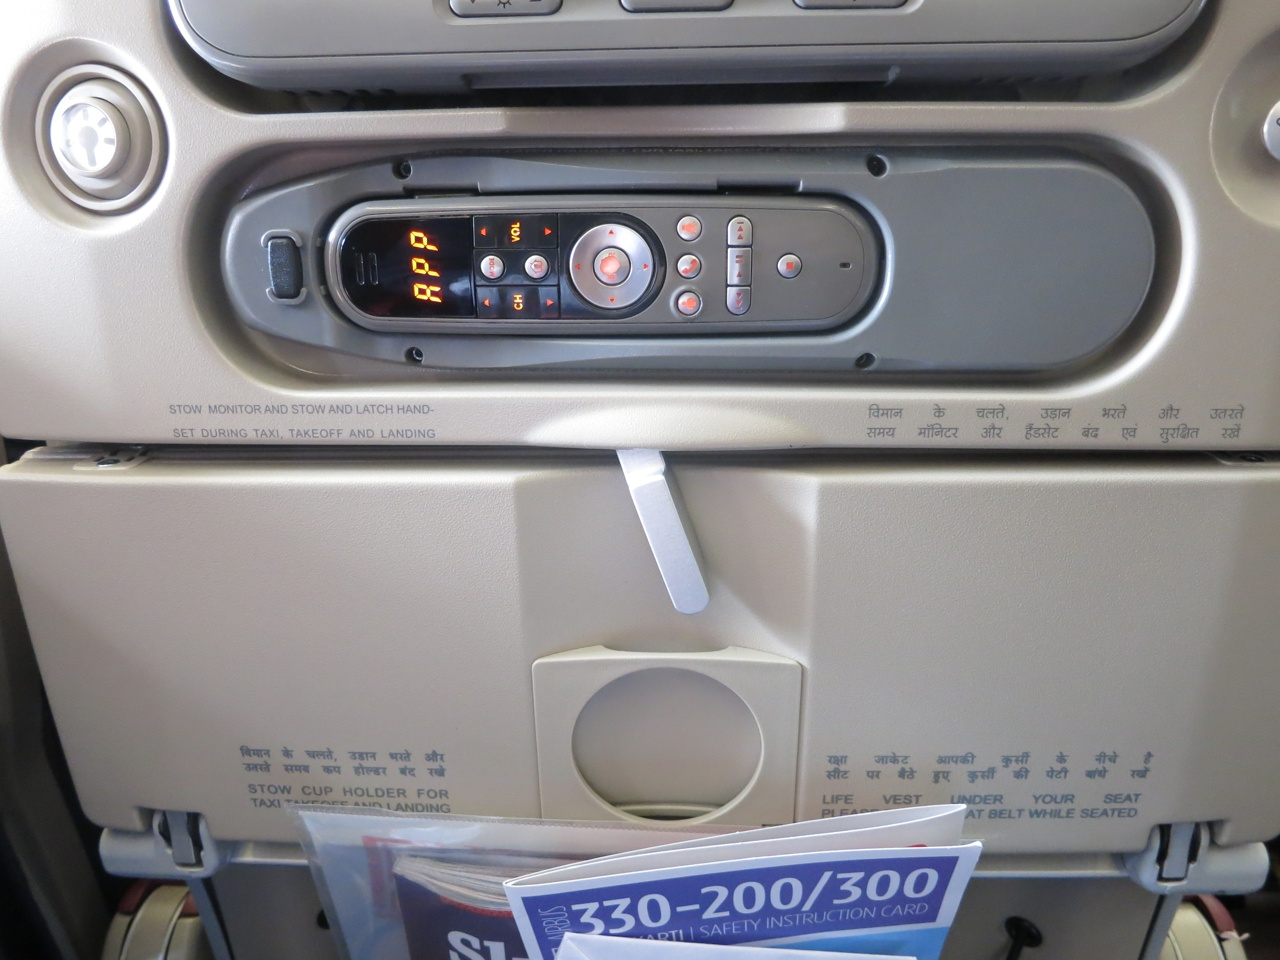 Turkish Airlines Economy class A330, - Jet Airways wet lease, 017.JPG